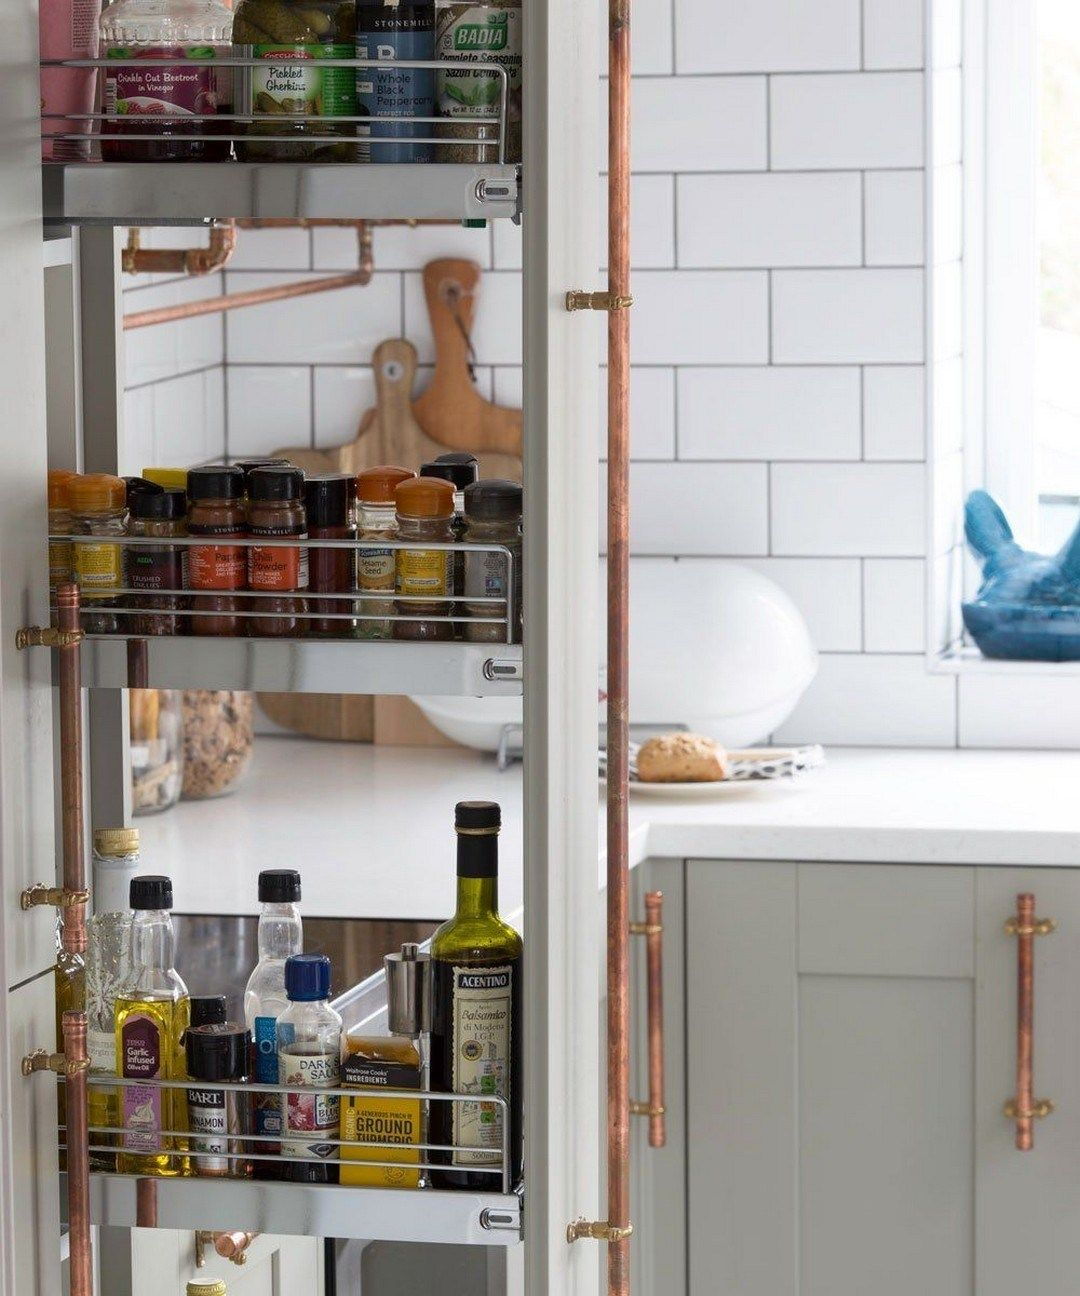 29 creative hidden kitchen storage solutions (16) | small kitchen storage, small space kitchen